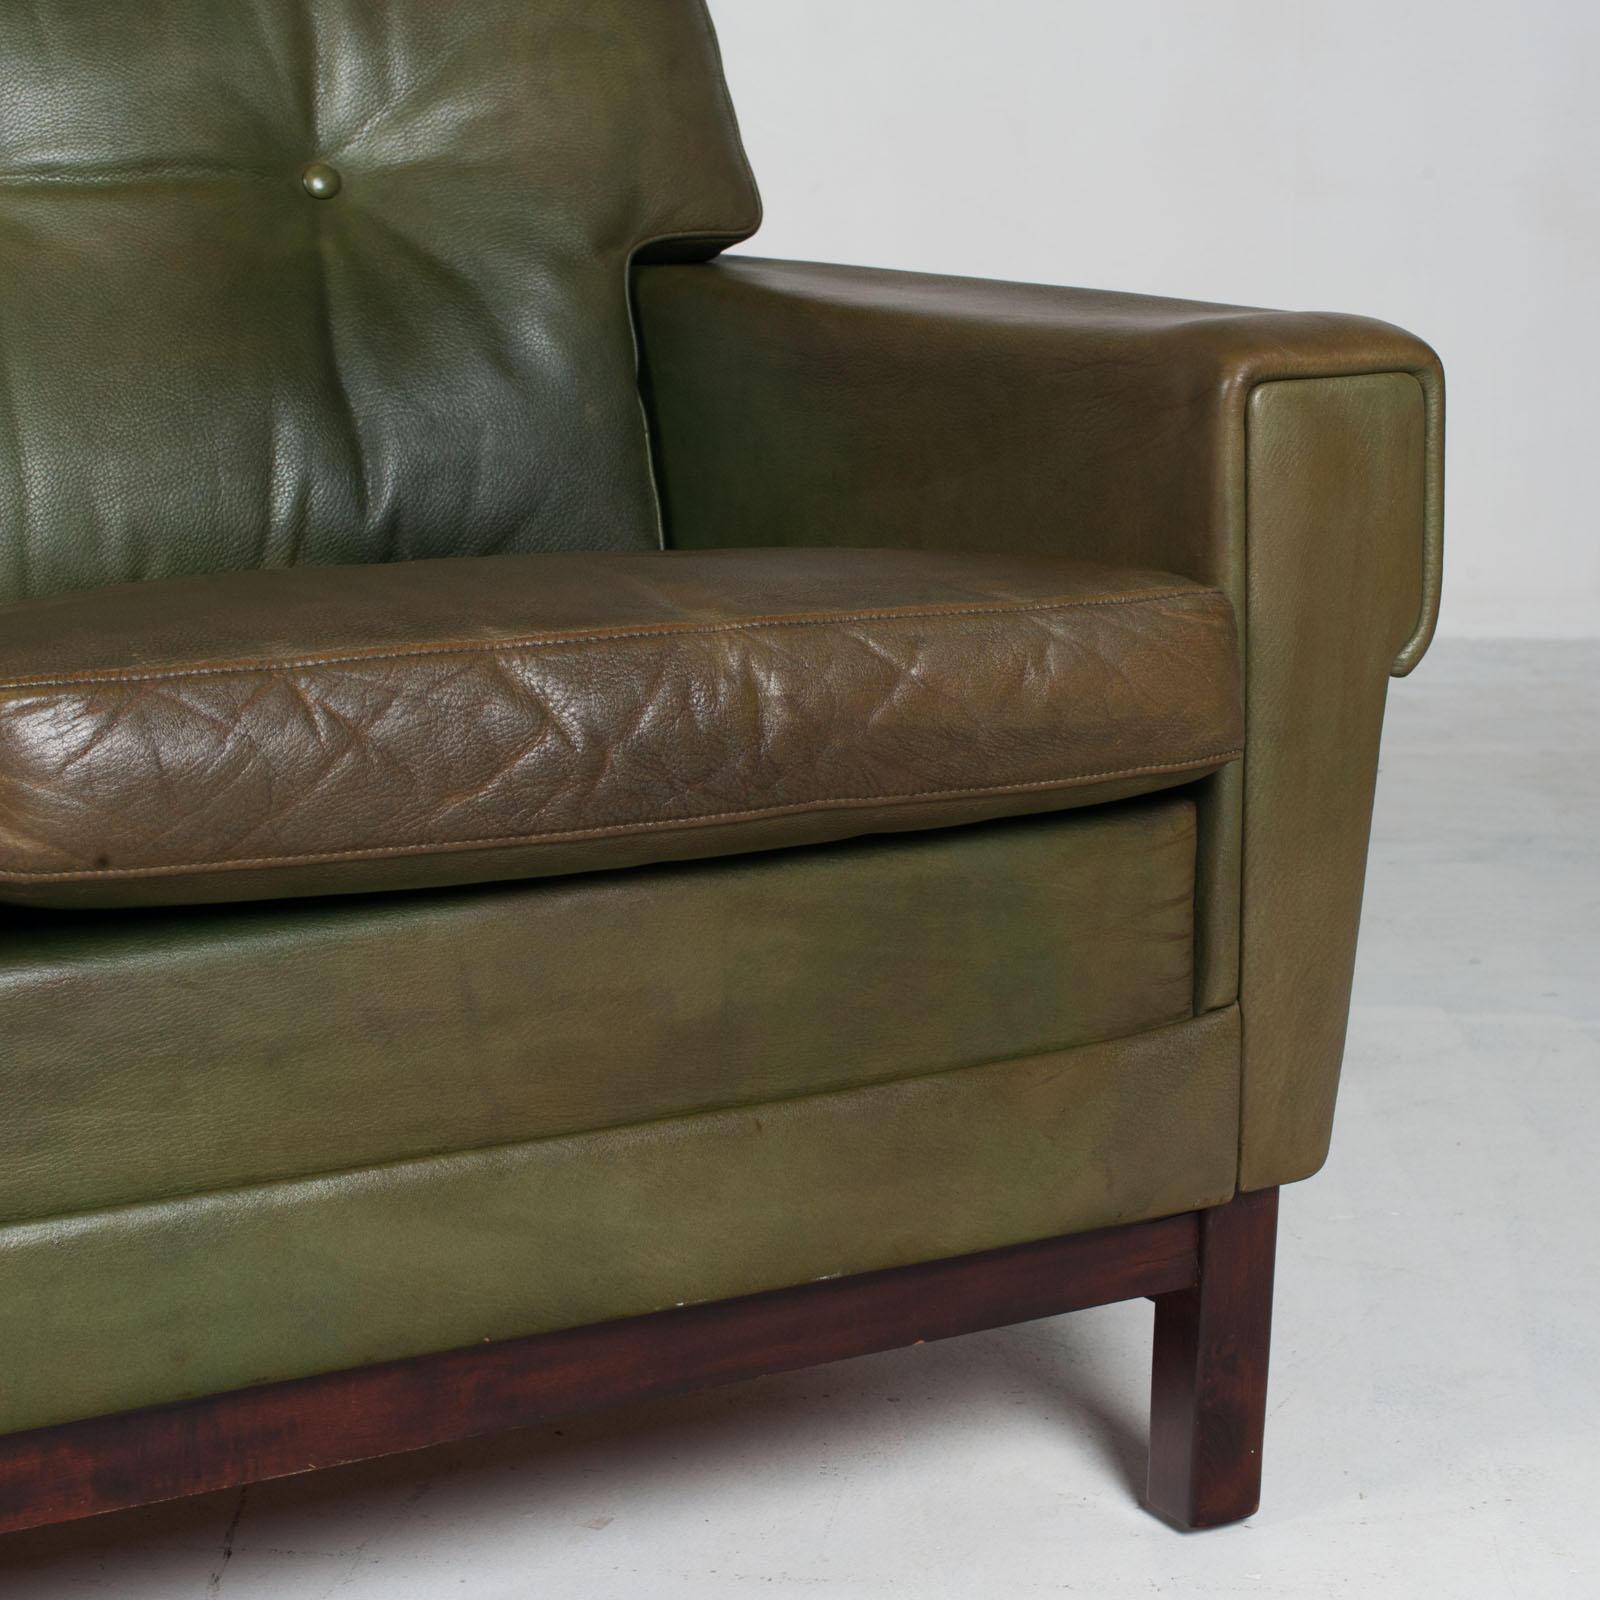 4 Seat Sofa In Olive Leather 1960s Denmark 09